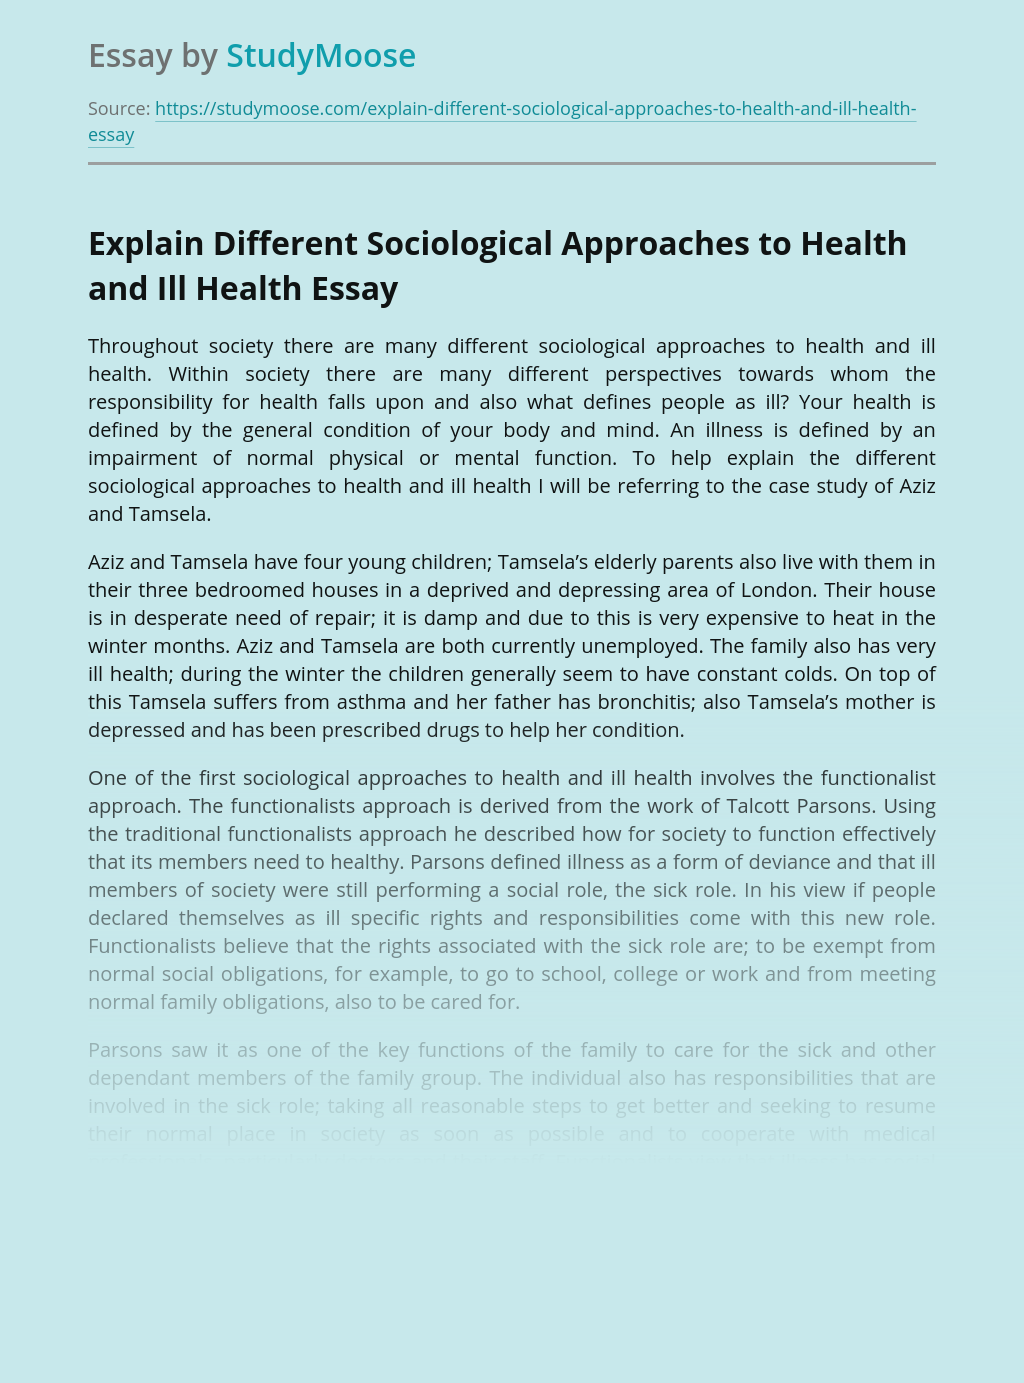 Explain Different Sociological Approaches to Health and Ill Health